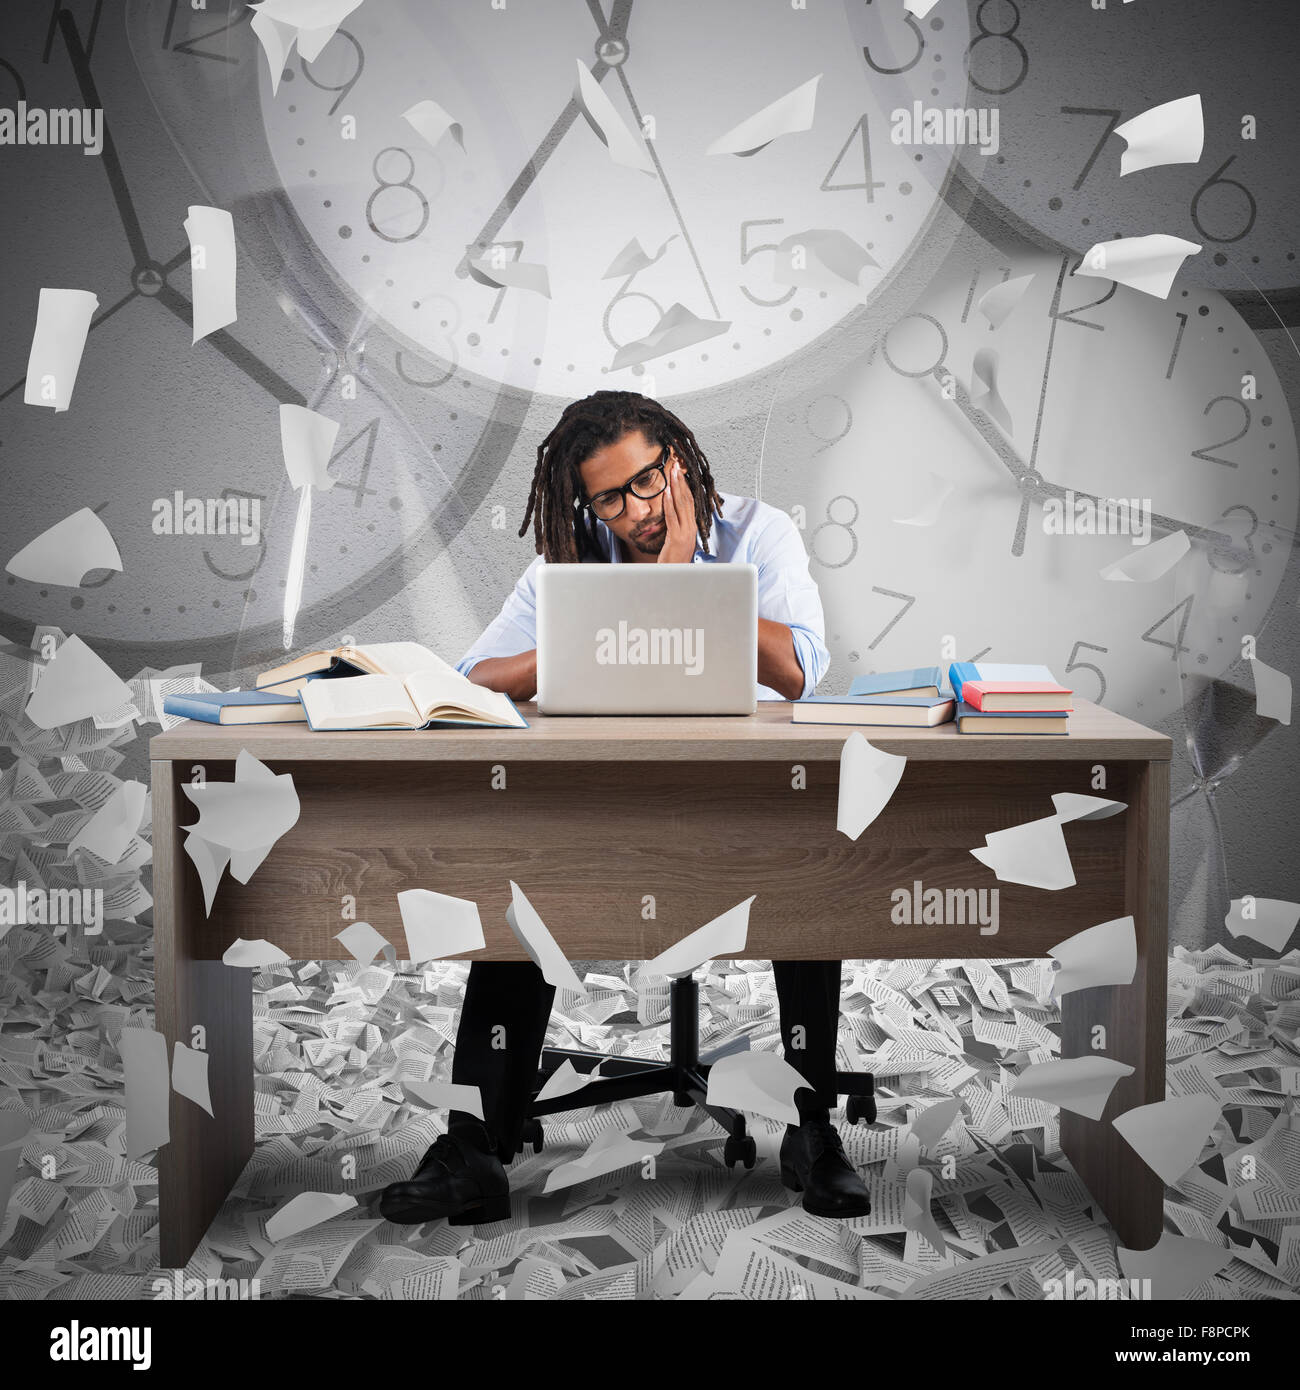 Overworked and overtime - Stock Image